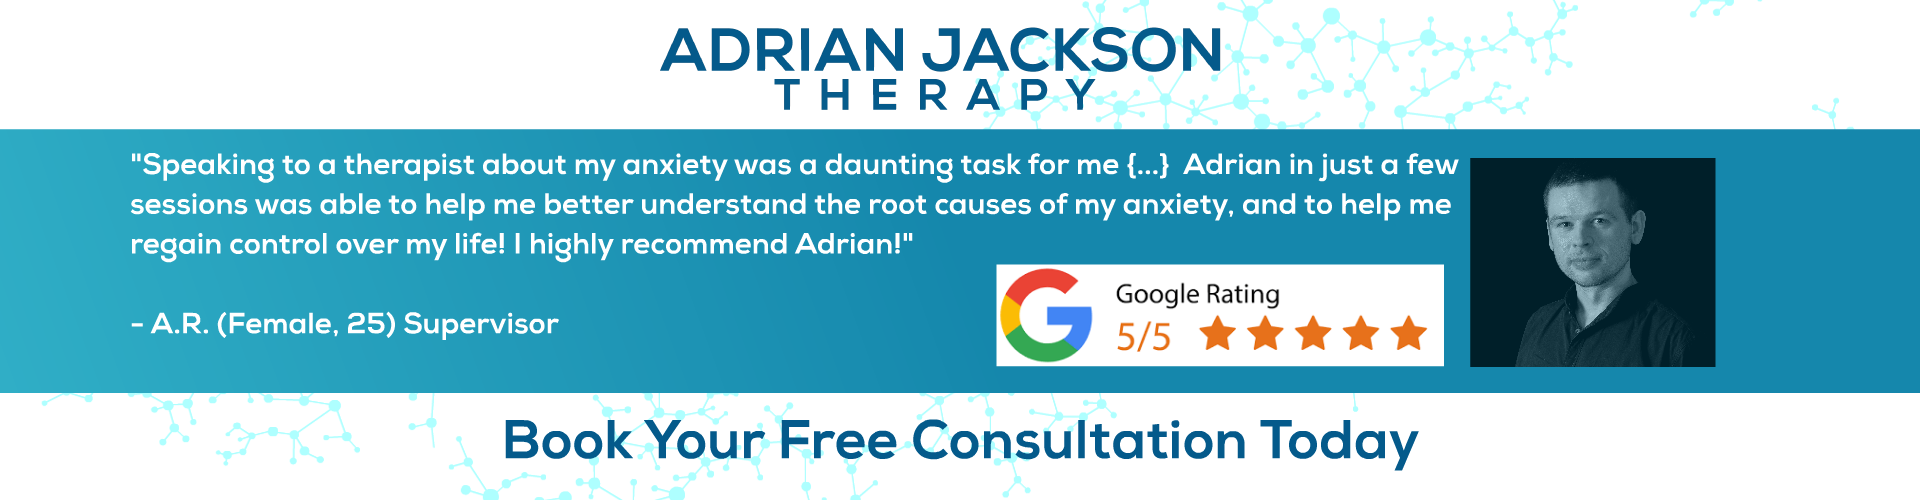 Adrian Jackson Therapy | Hypnotherapist in Harrow|Hillingdon|Hertfordshire|Hayes|Ruislip|Uxbridge|Northwood|Pinner